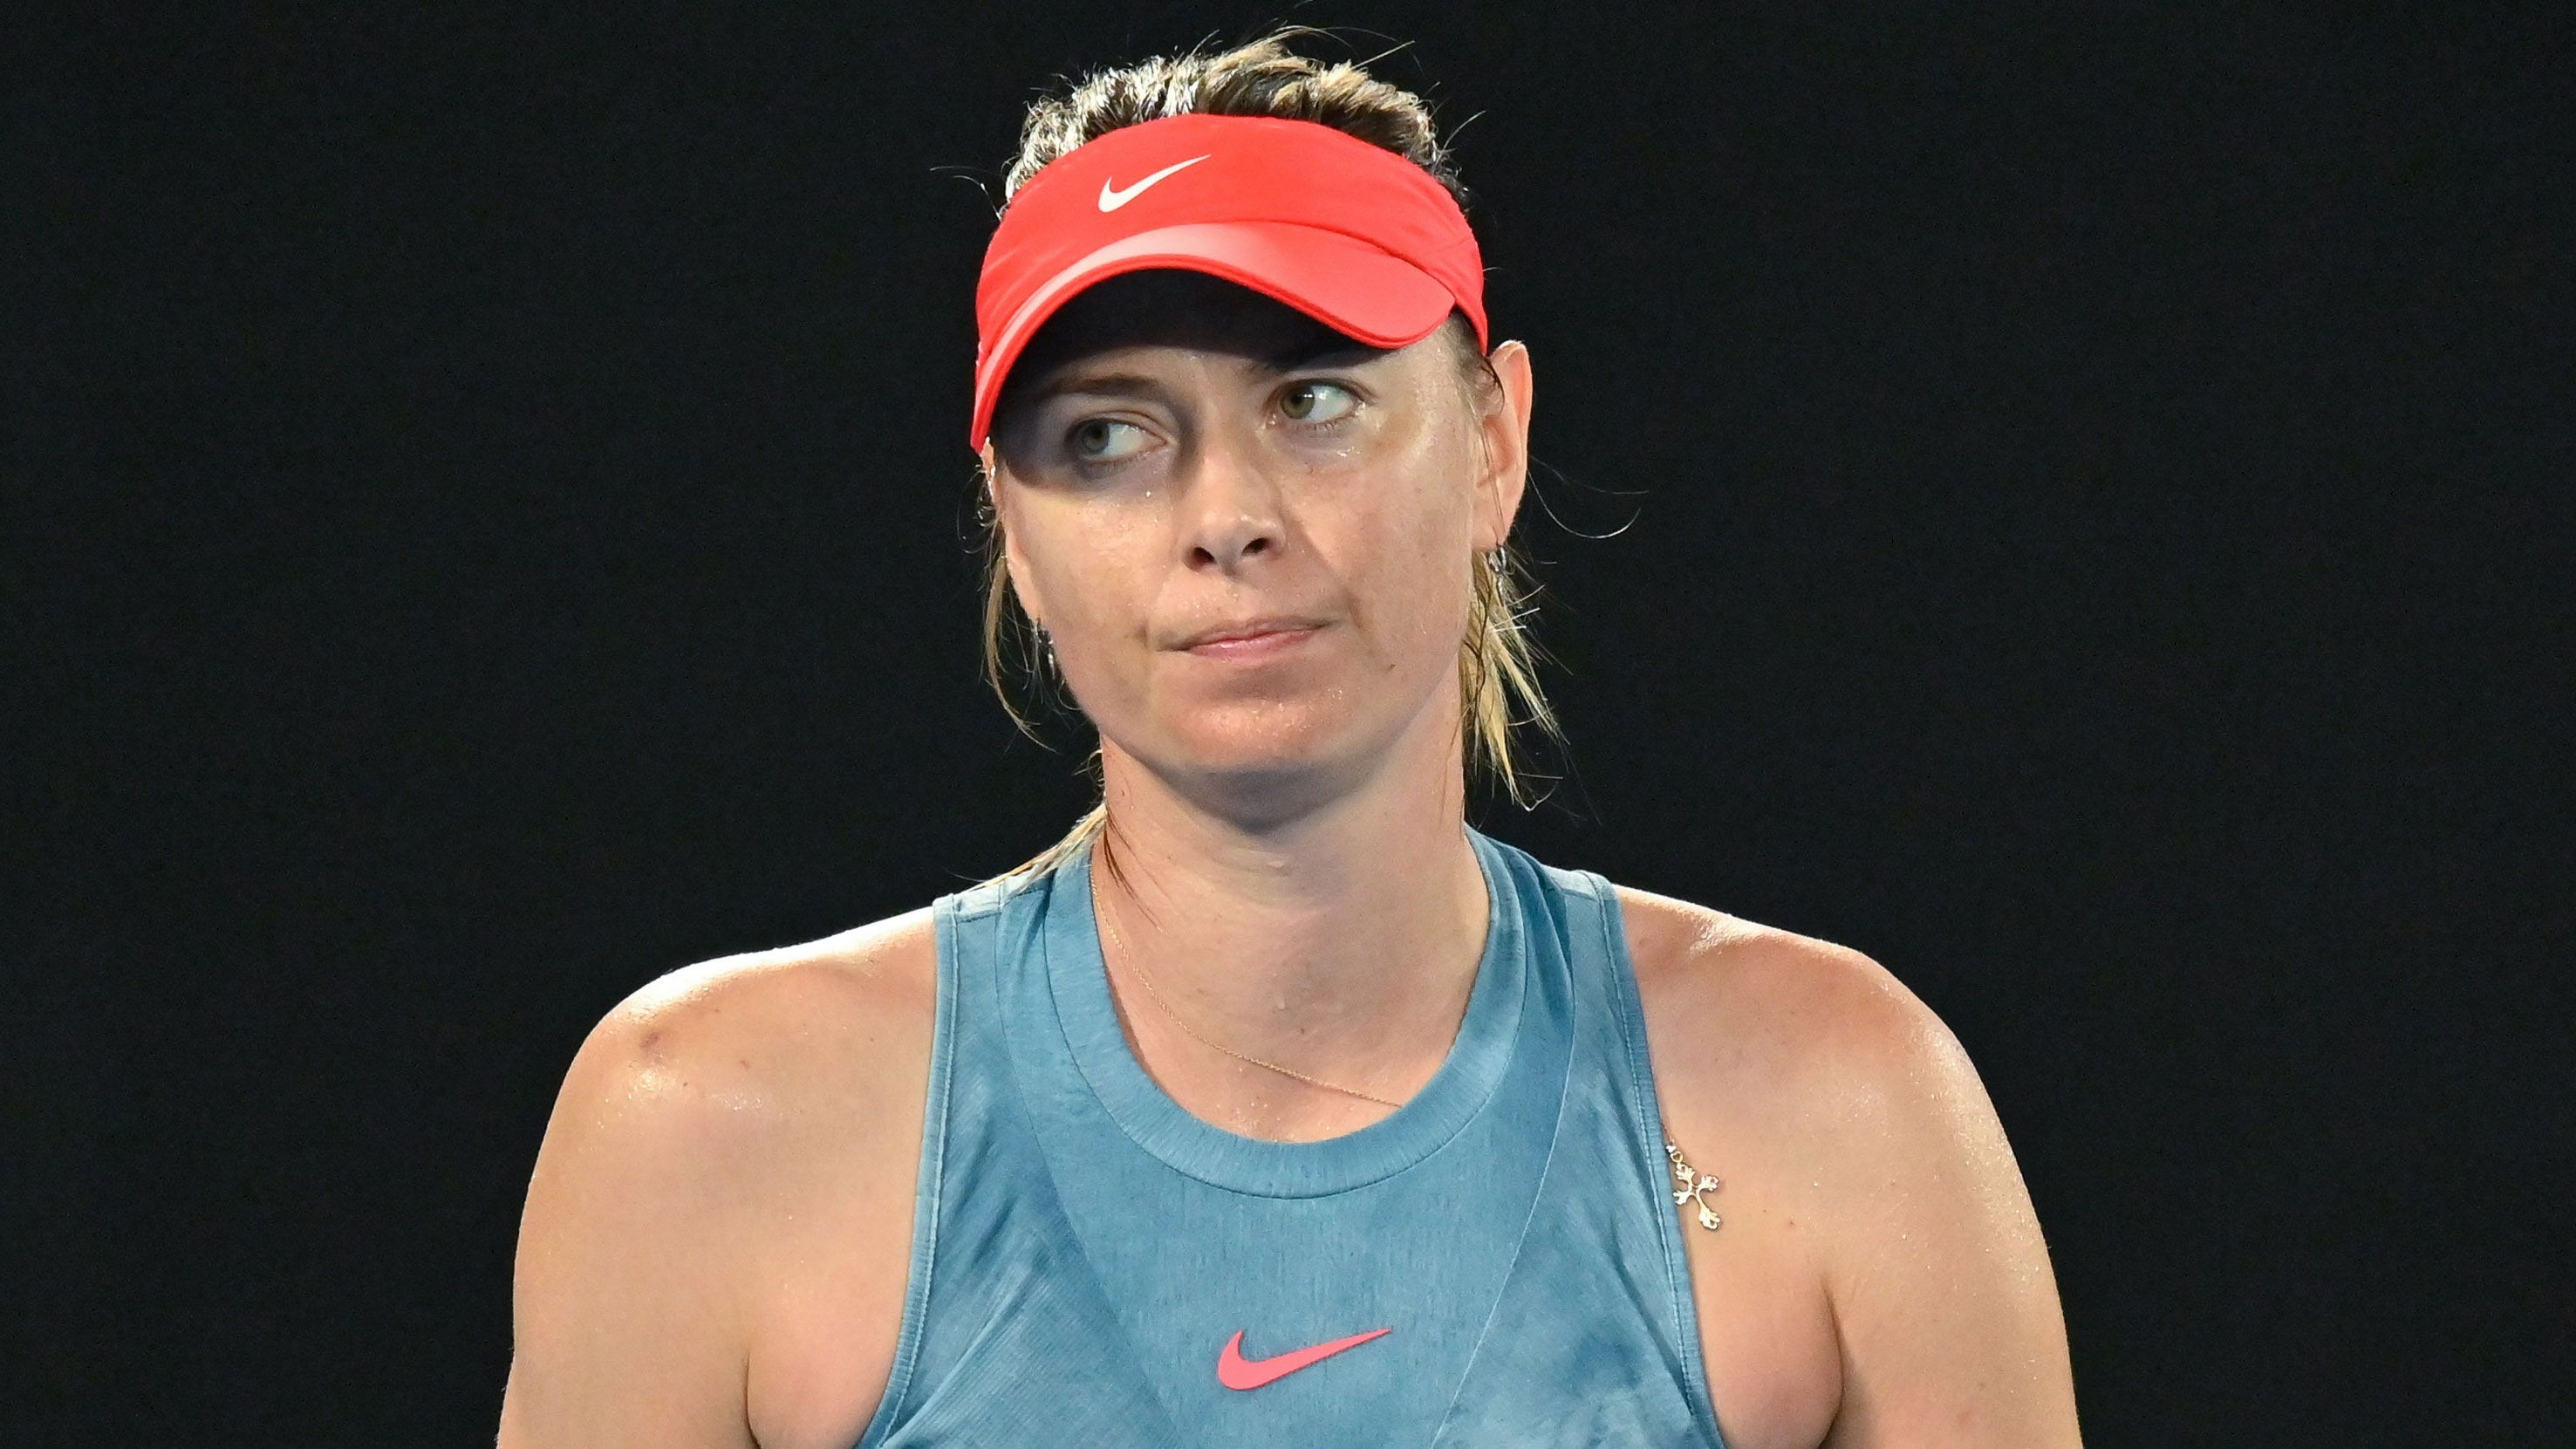 Australian Open - Angelique Kerber upset by Danielle Collins in fourth round